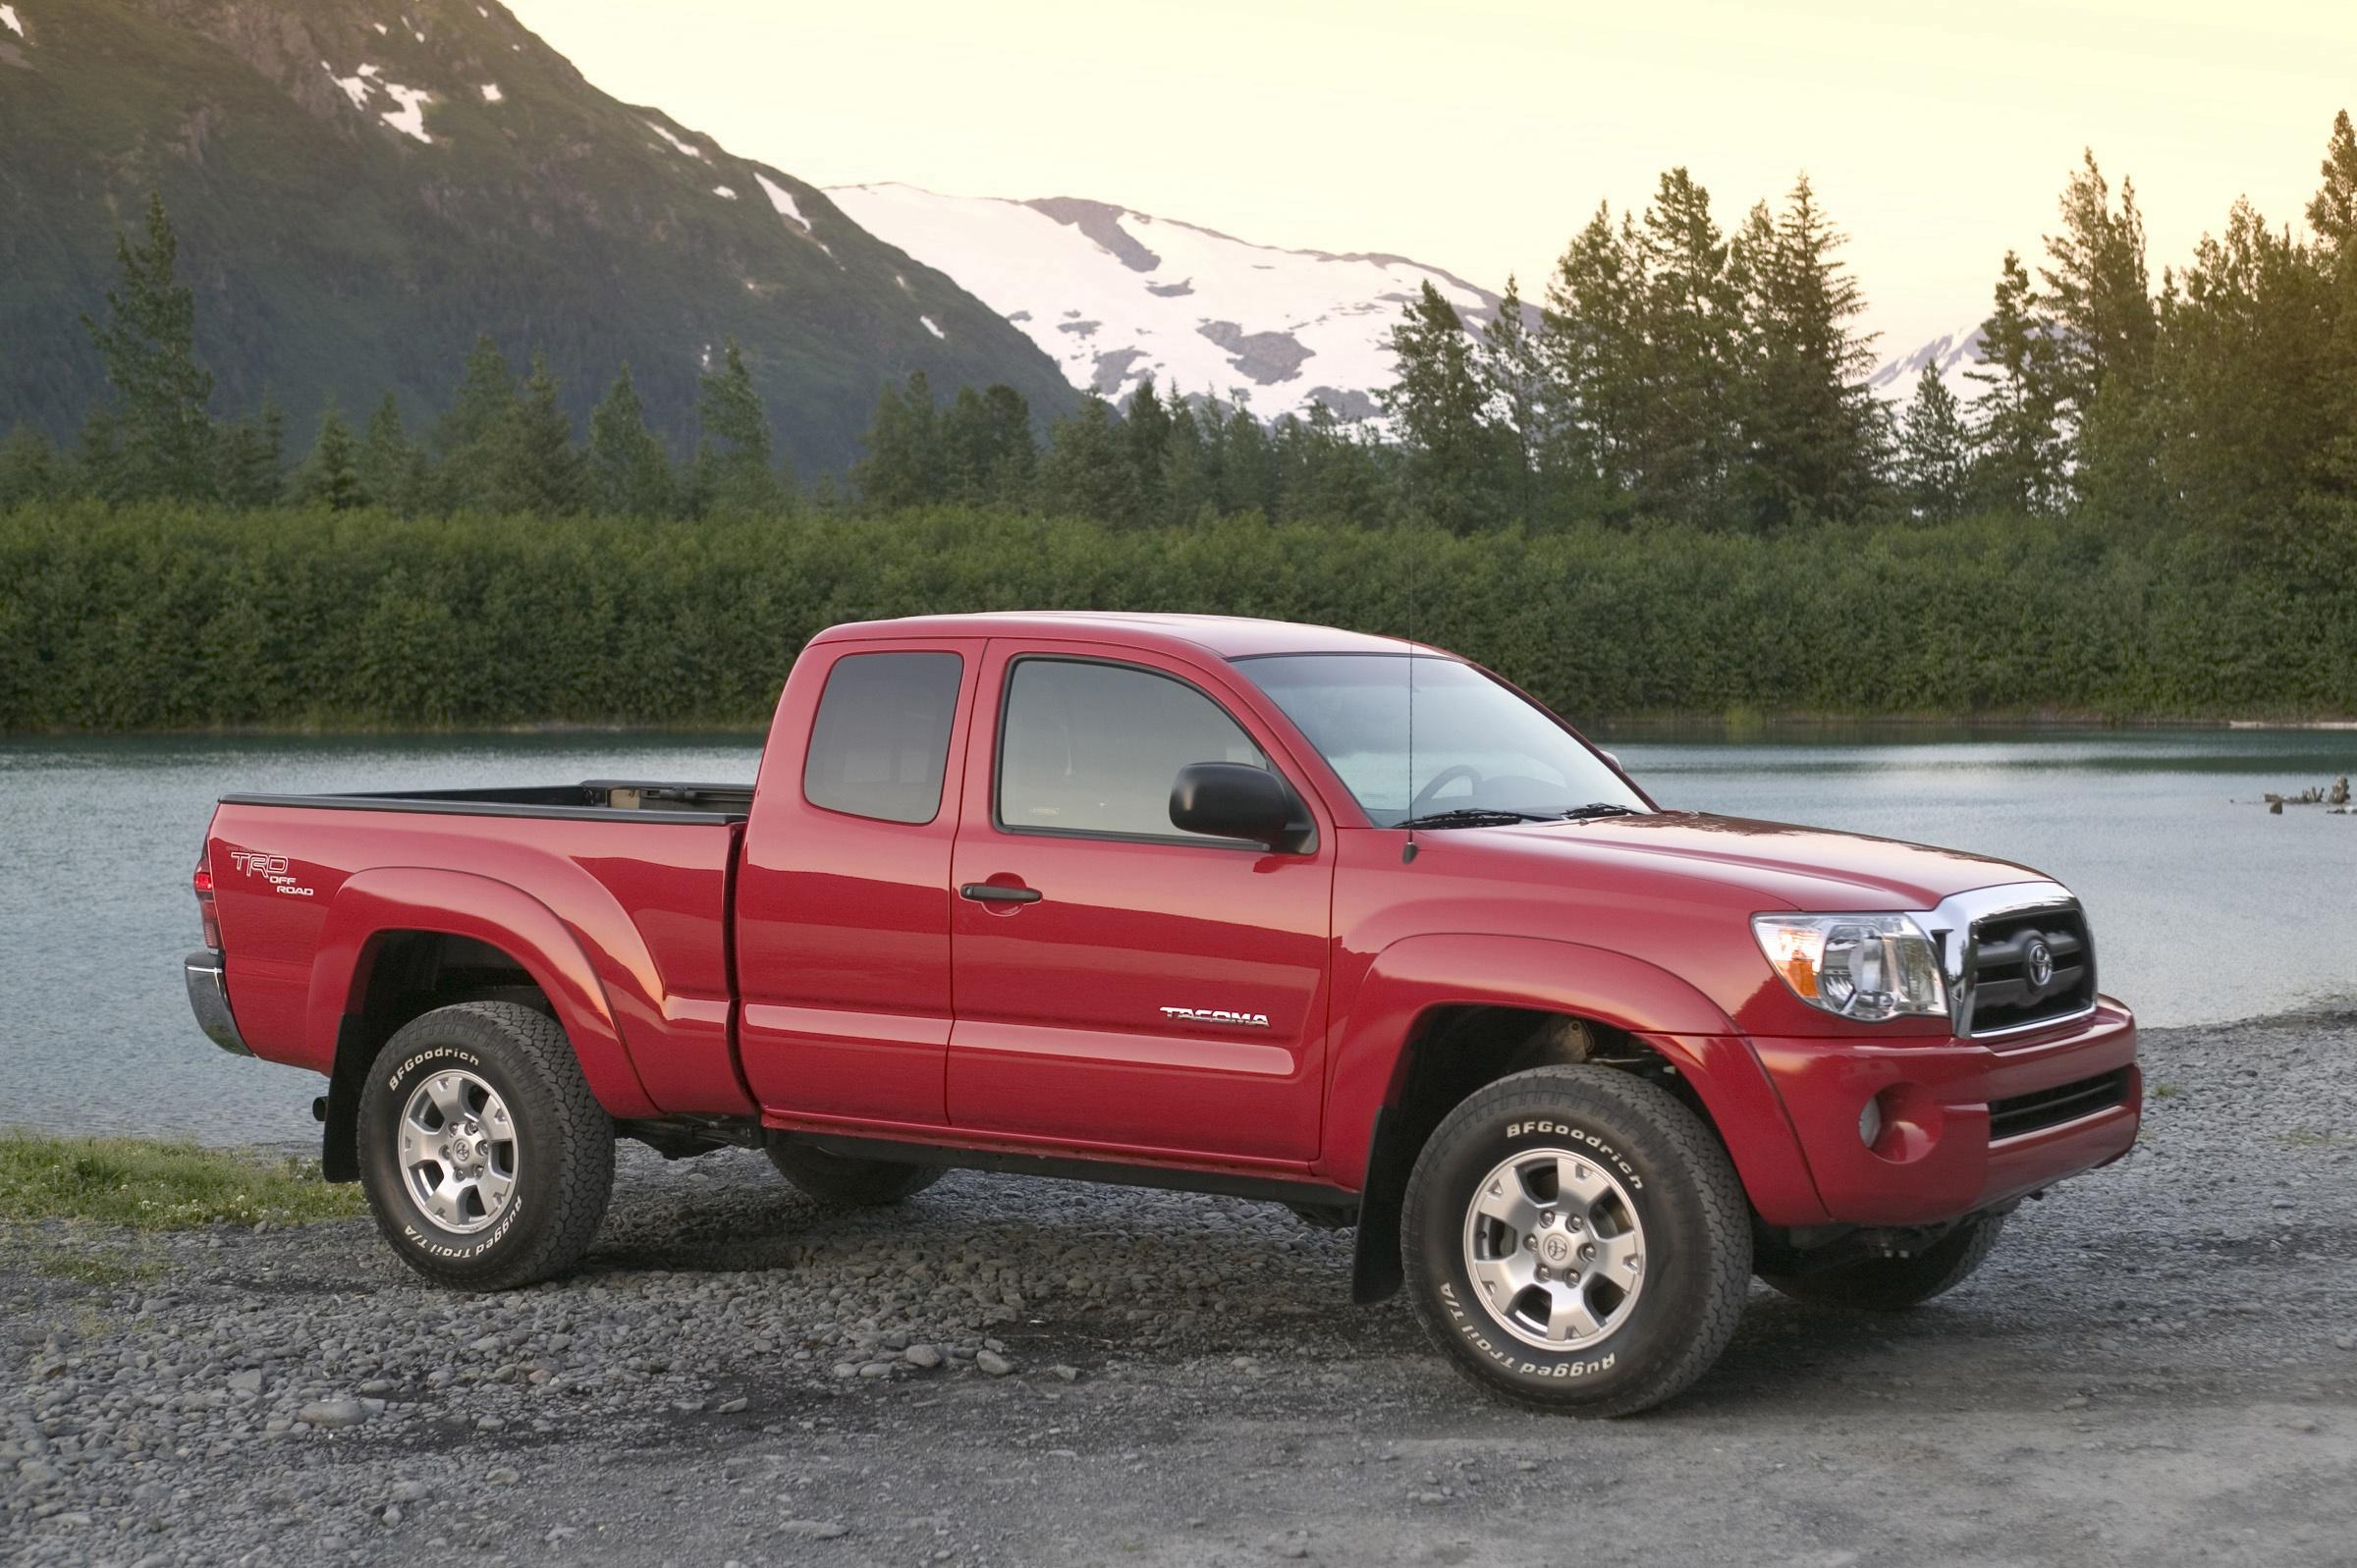 Toyota Four Runner For Sale >> 2009 Toyota Tacoma Pricing Announced | Top Speed